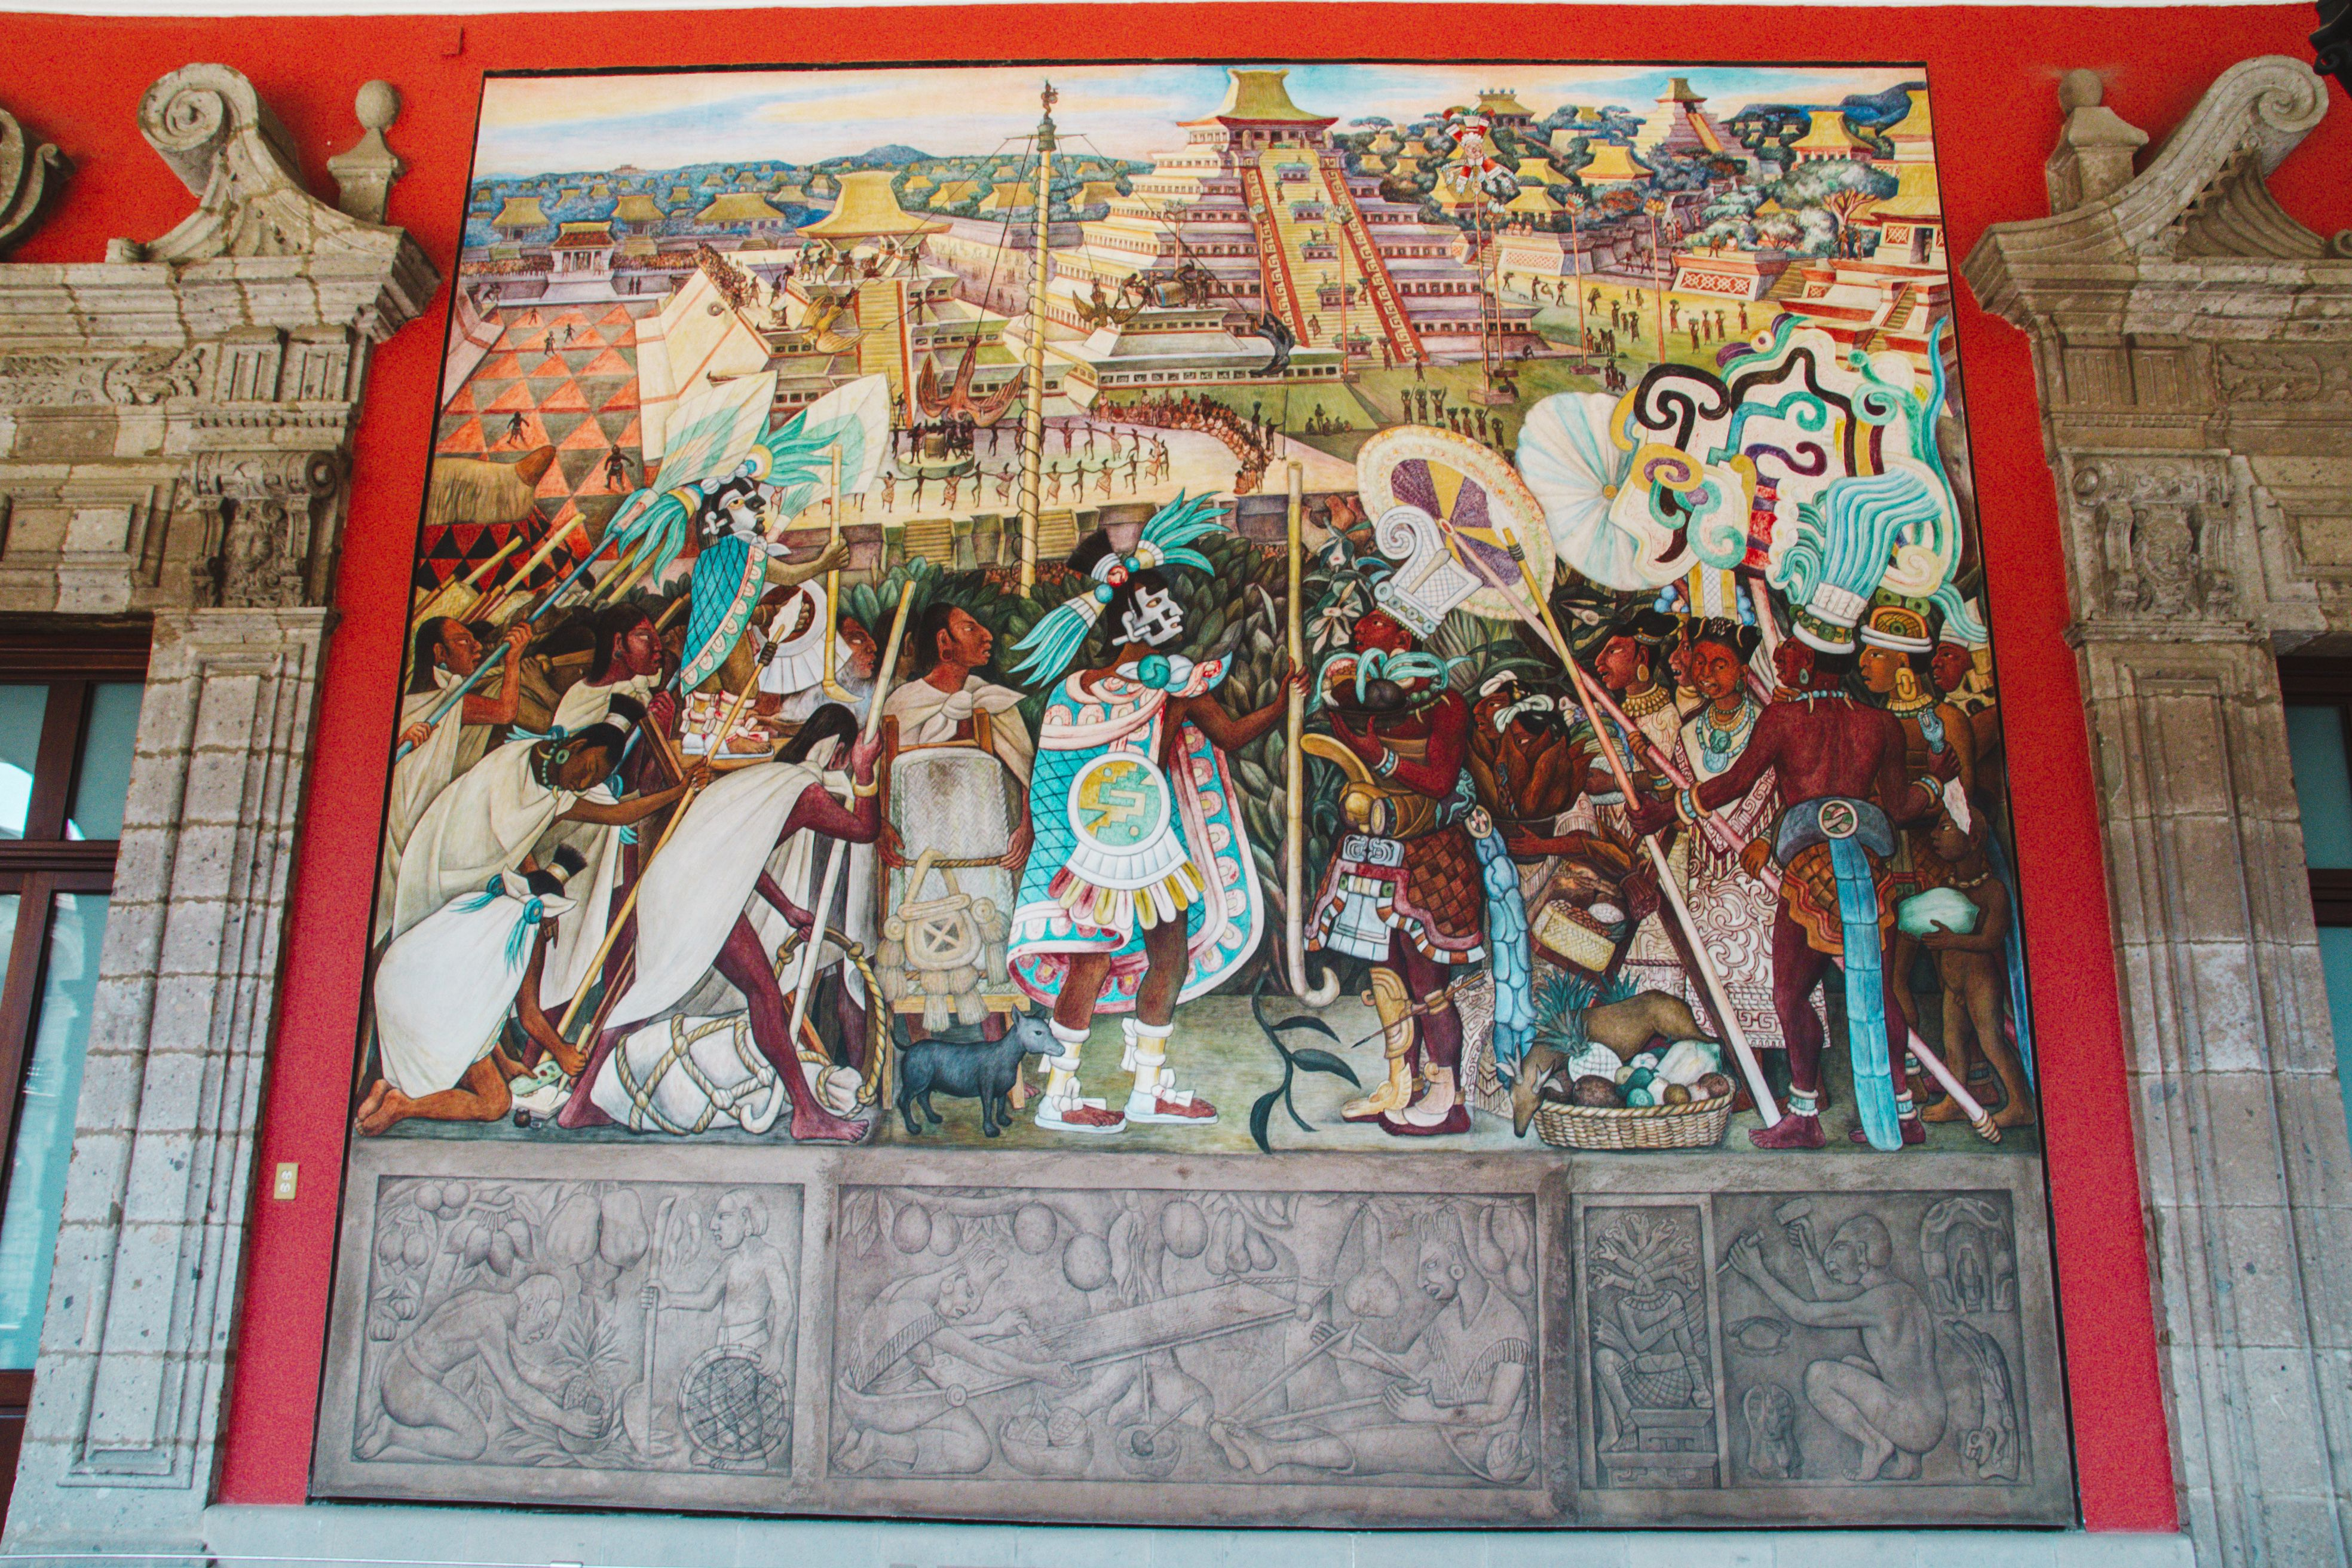 Mural in Mexico City